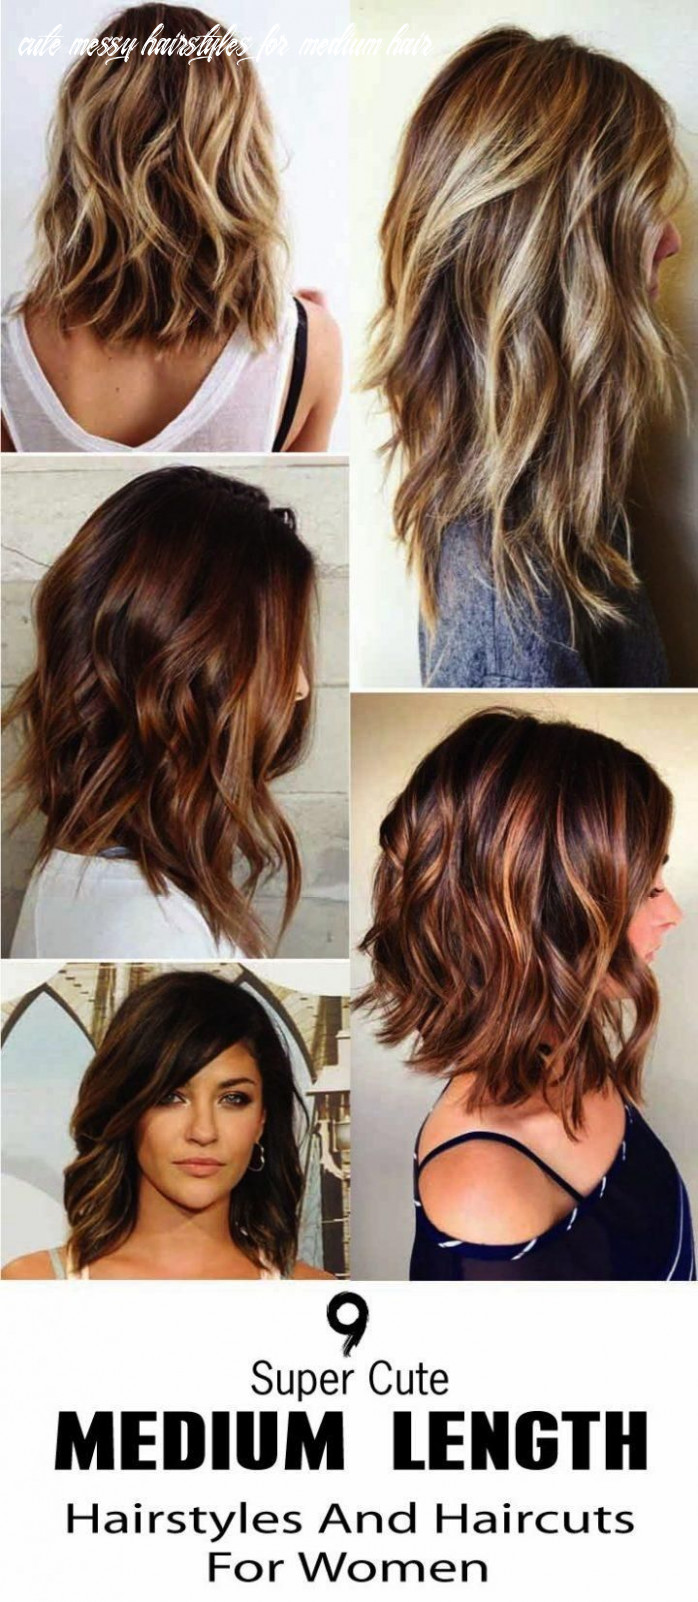 12+ Popular Short Messy Hairstyles 12 | Einfache frisuren ...